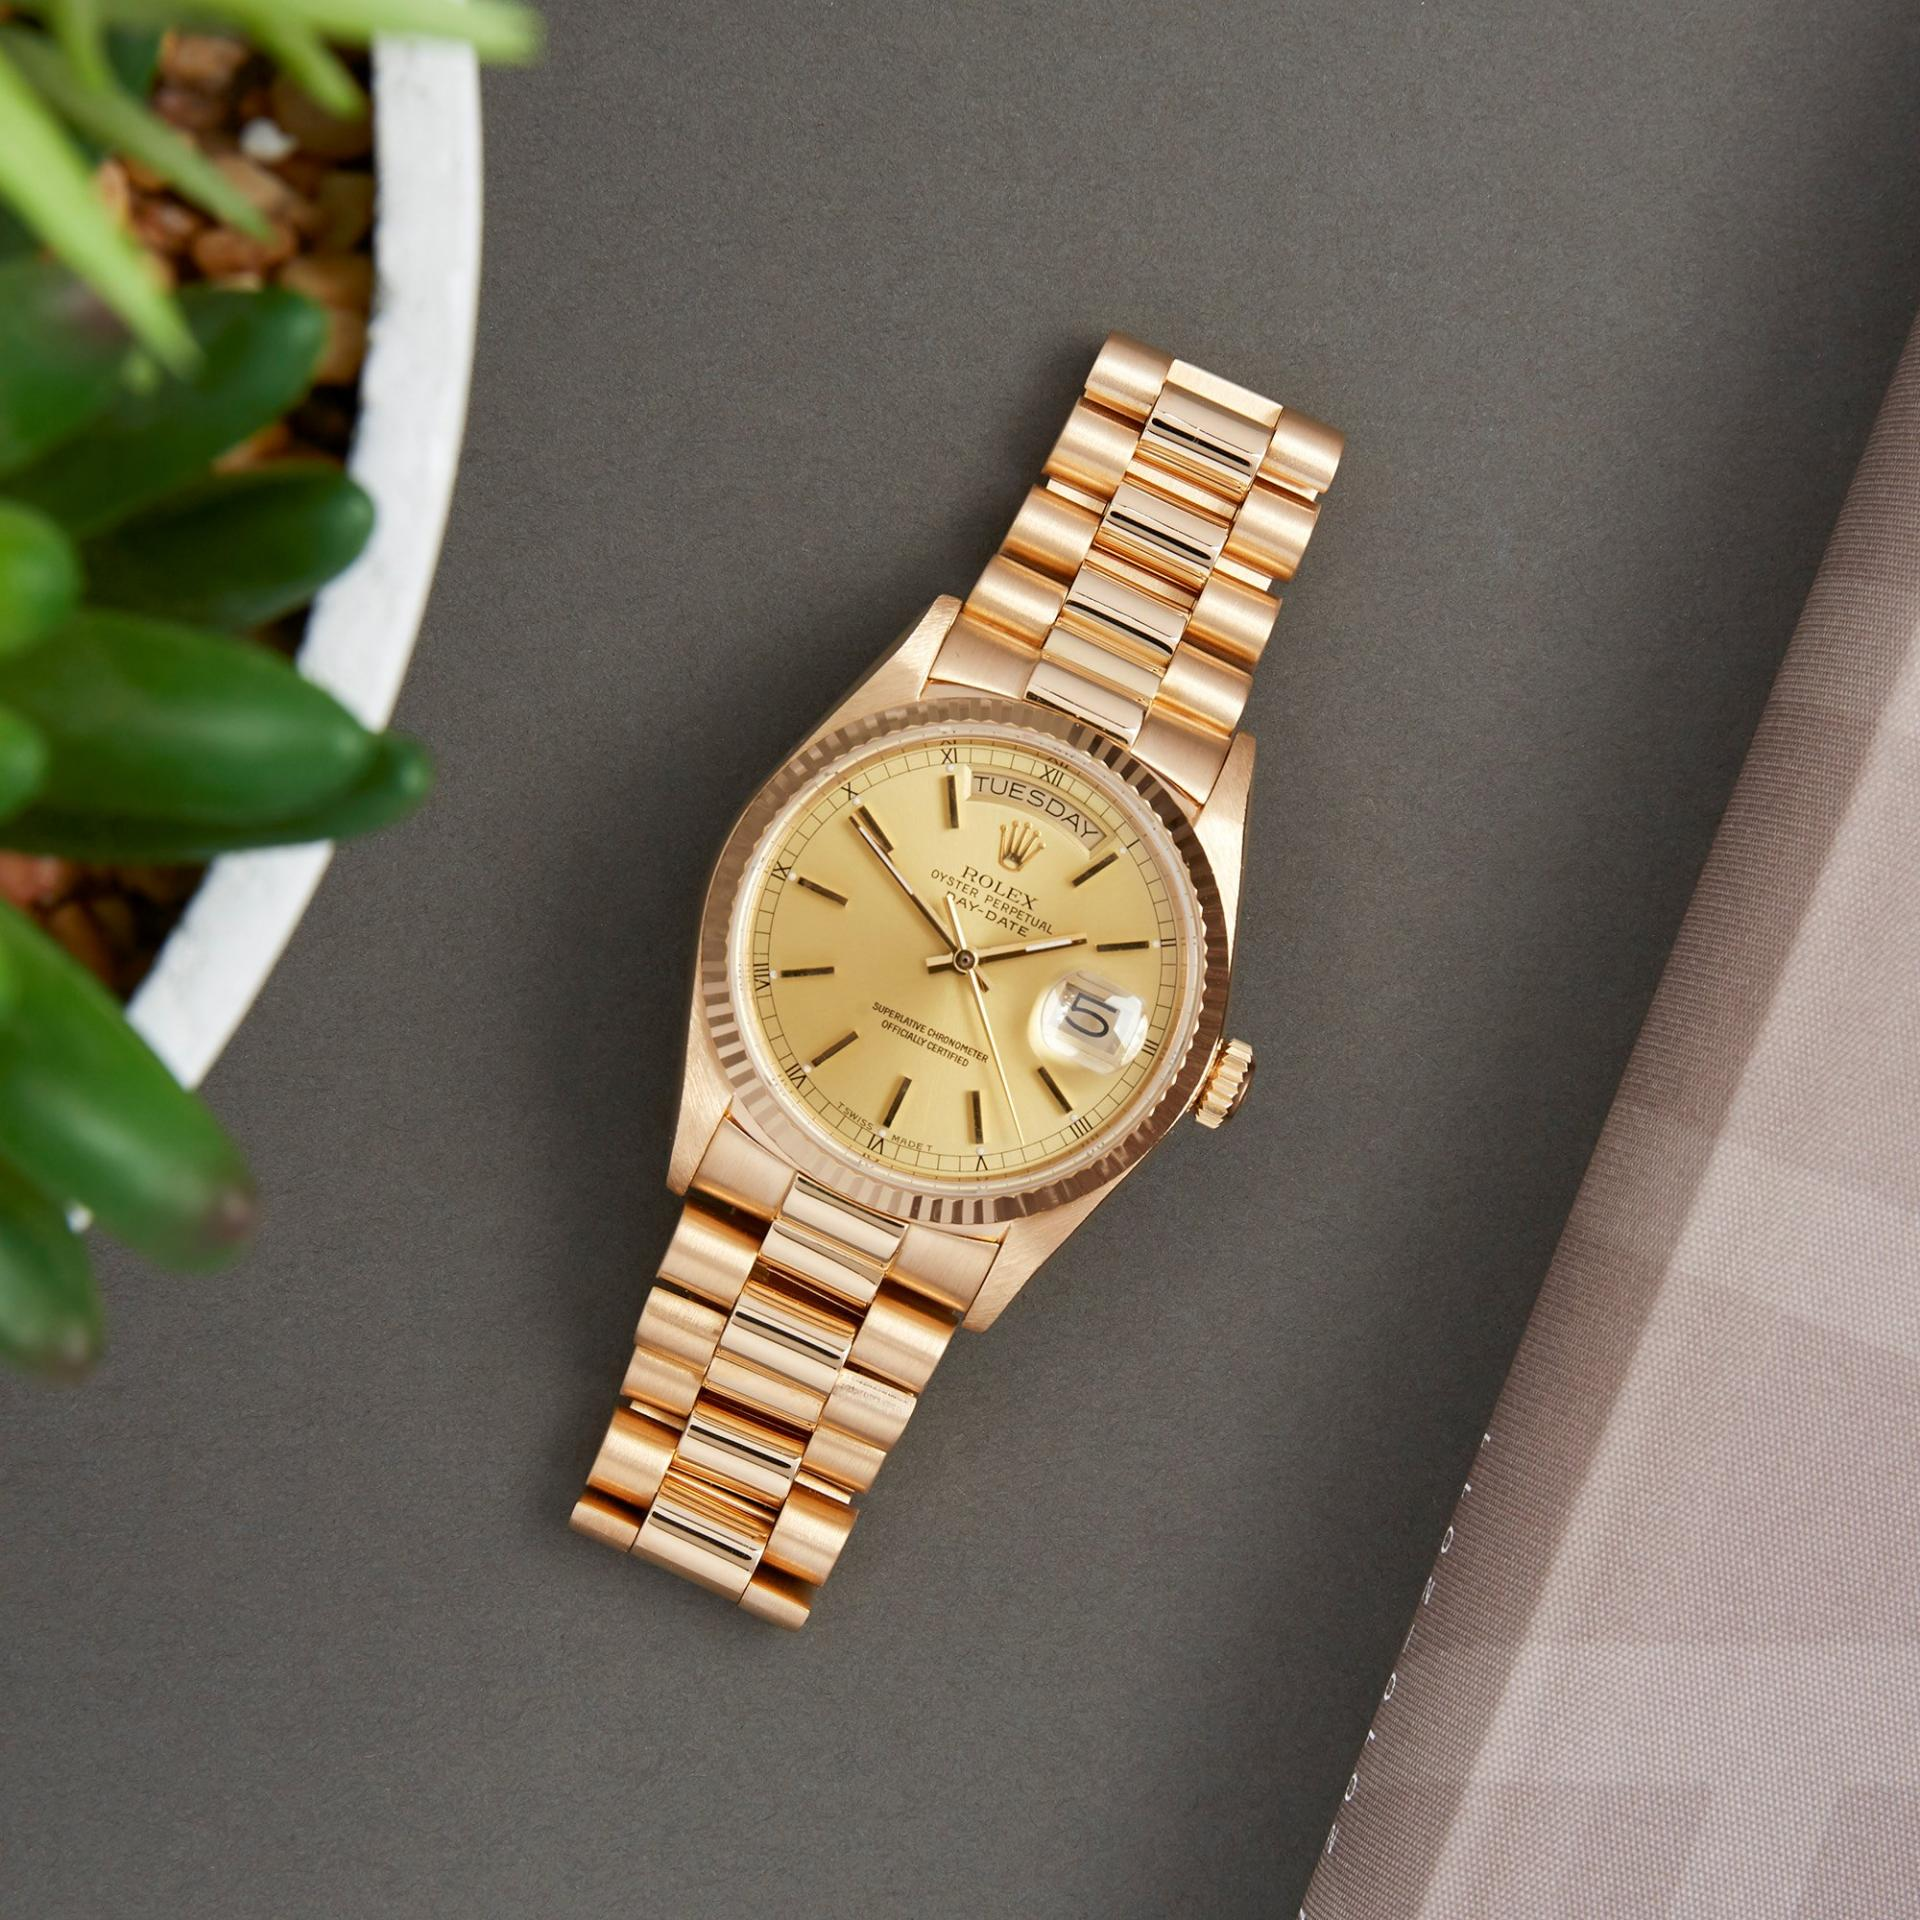 Rolex 36mm Day-Date Yellow and White Gold ref. 18038, 18039, 18238 and ref. 18239